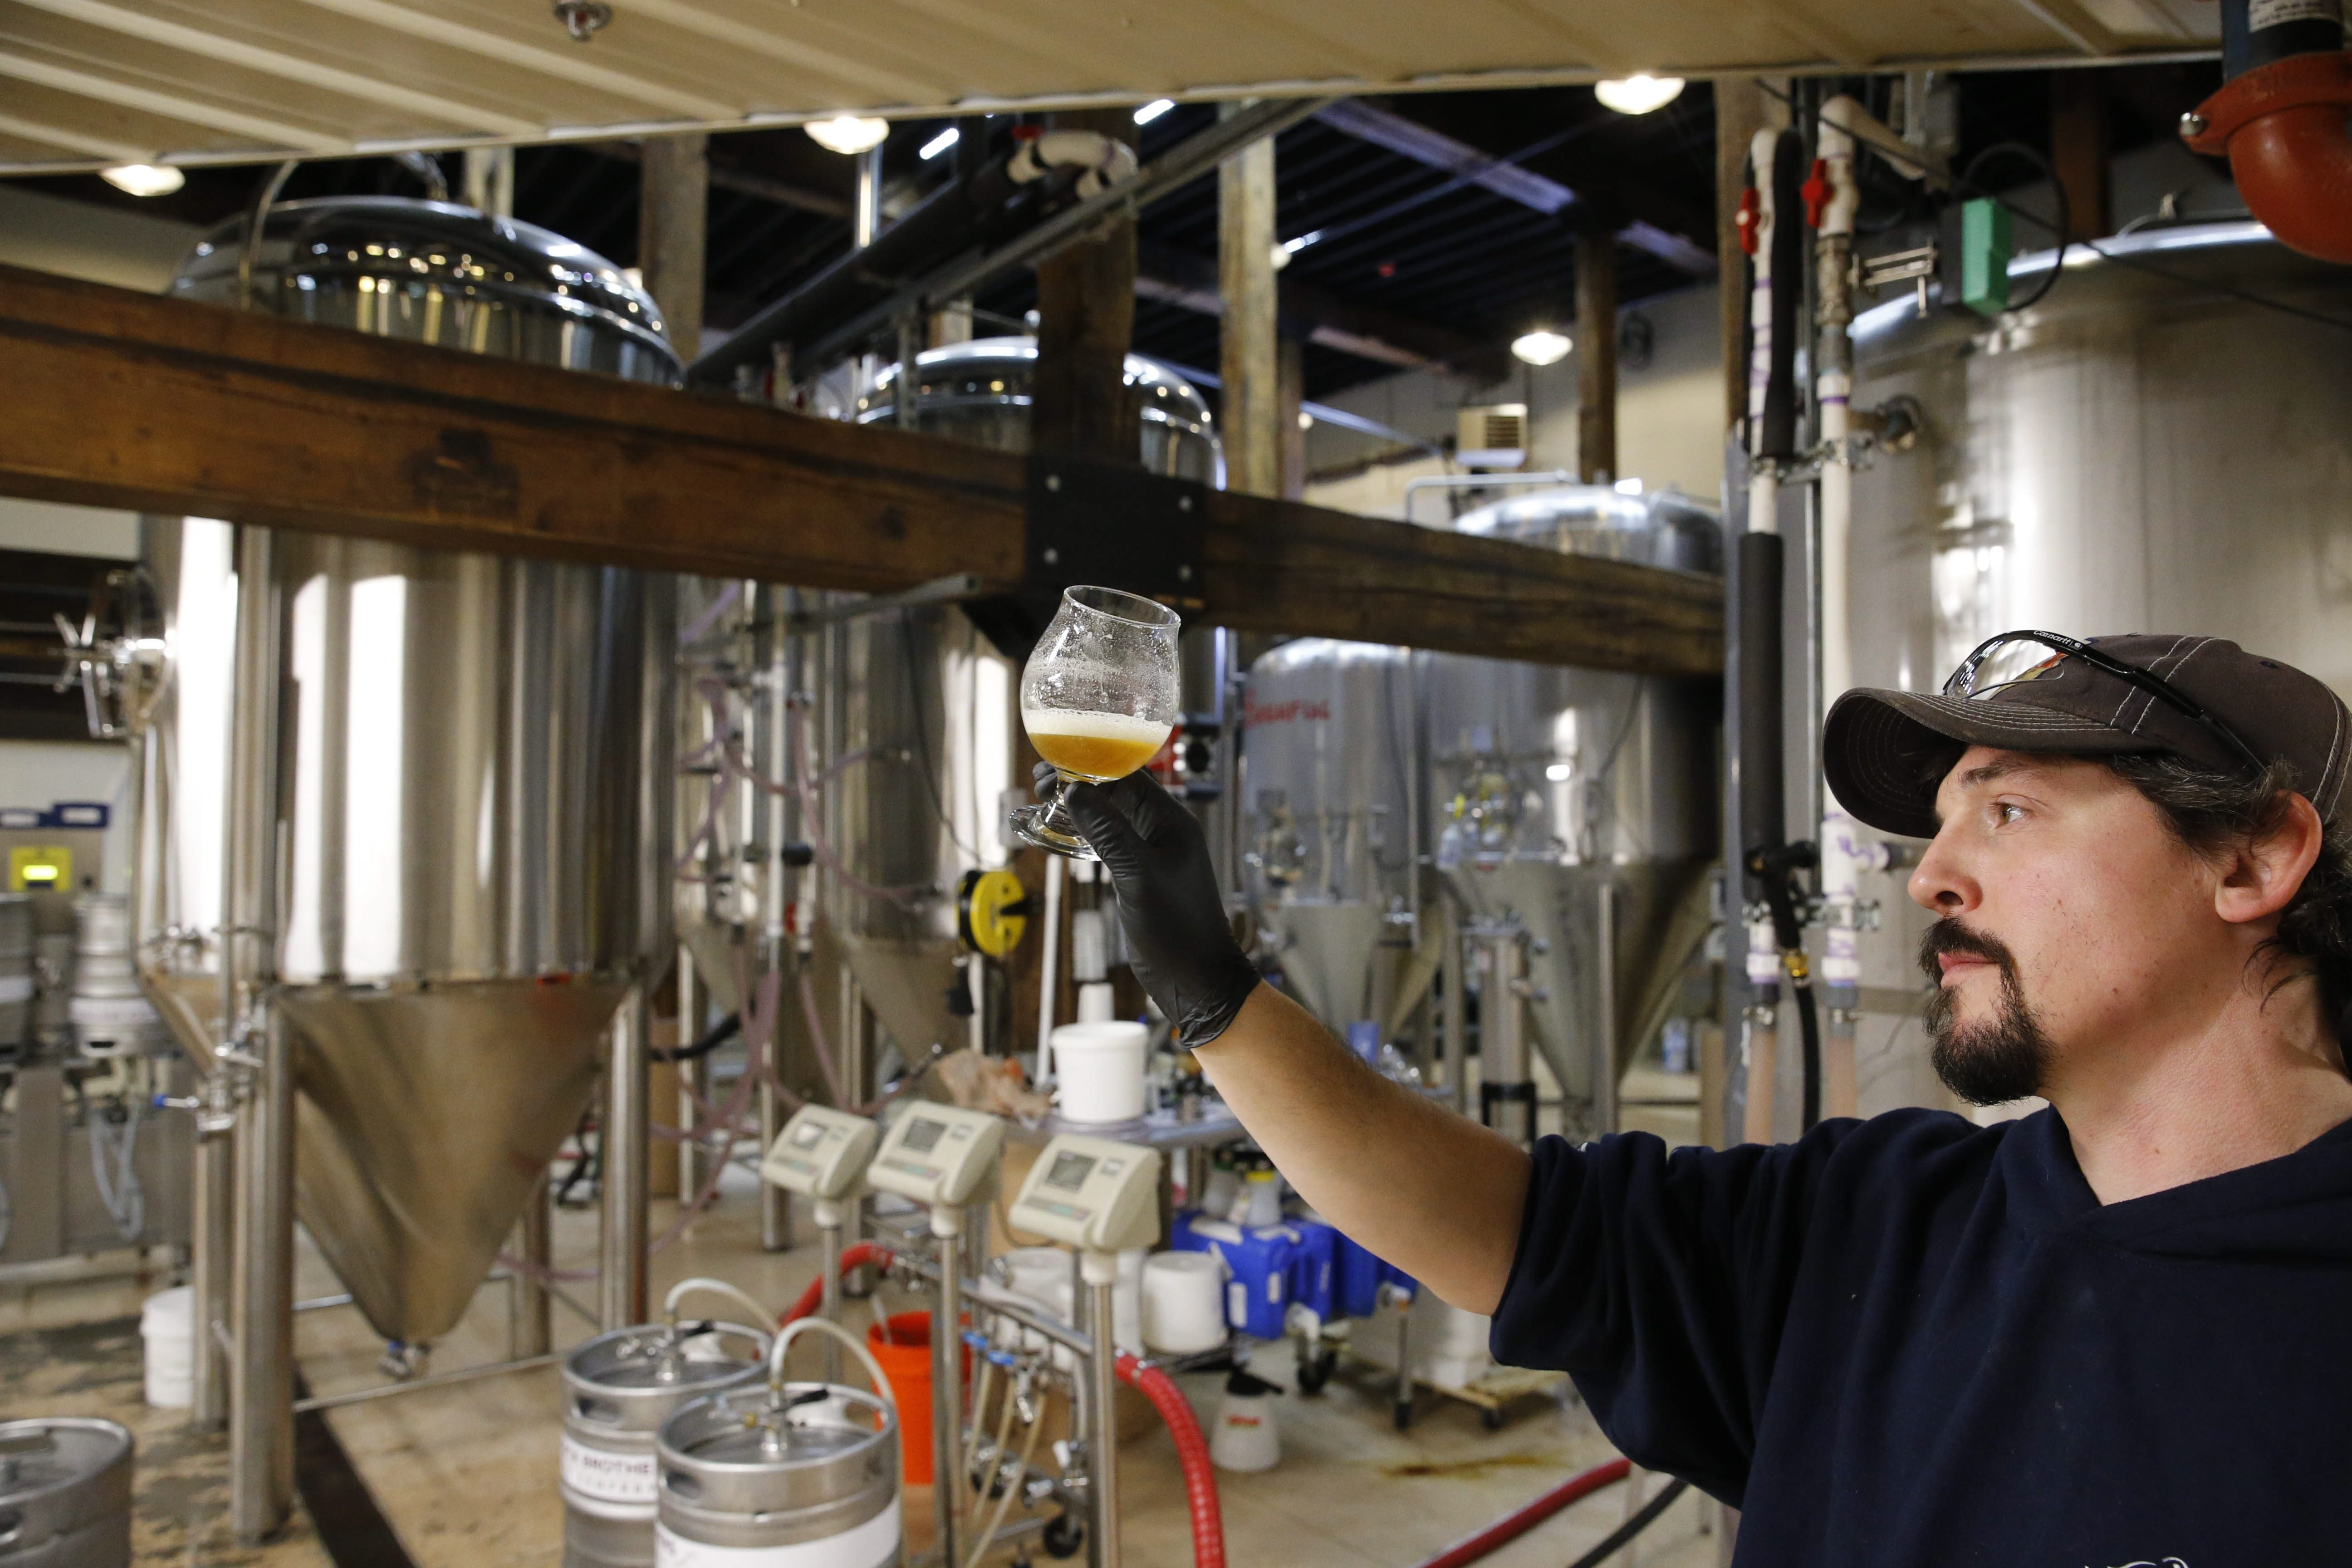 Matt Redpath, the head brewer at Woodcock Brothers Brewing Co. in Wilson, examines the first glass of a newly brewed tank of XPA. Woodcock Brothers is planning to create 4,000 cans of its popular brews for widespread distribution.